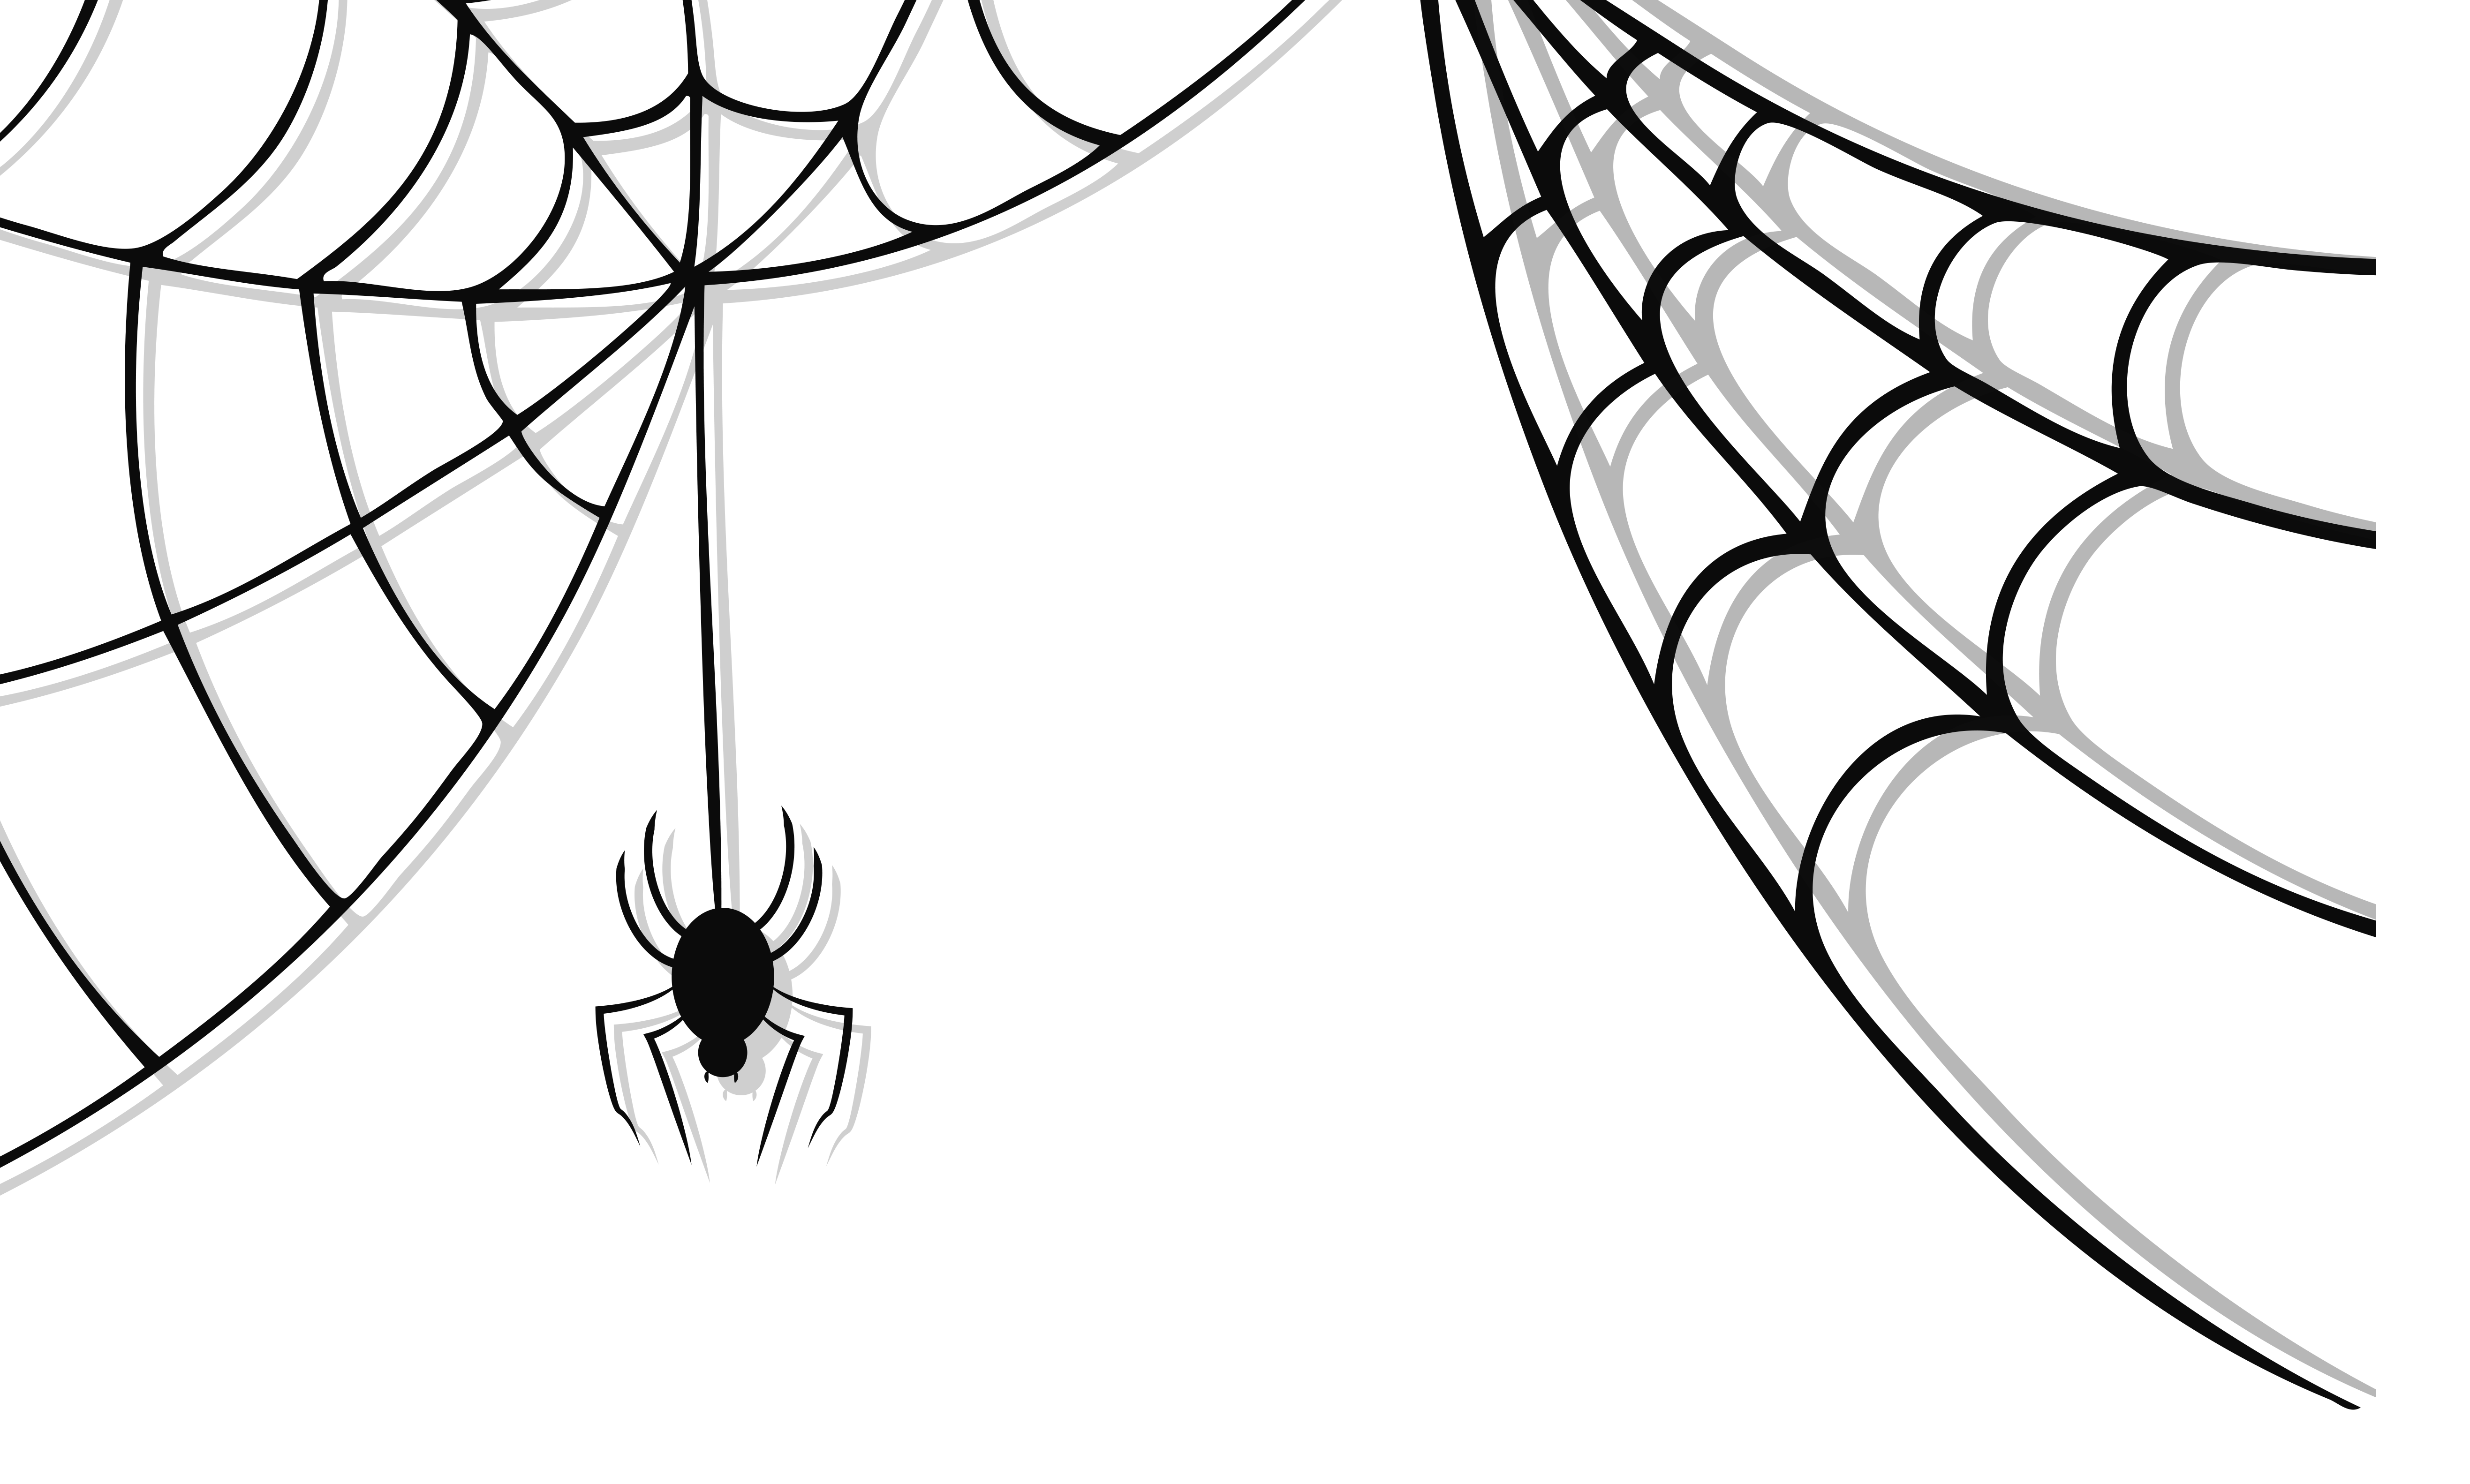 Cute spider web clipart free clipart images 4 clipartcow